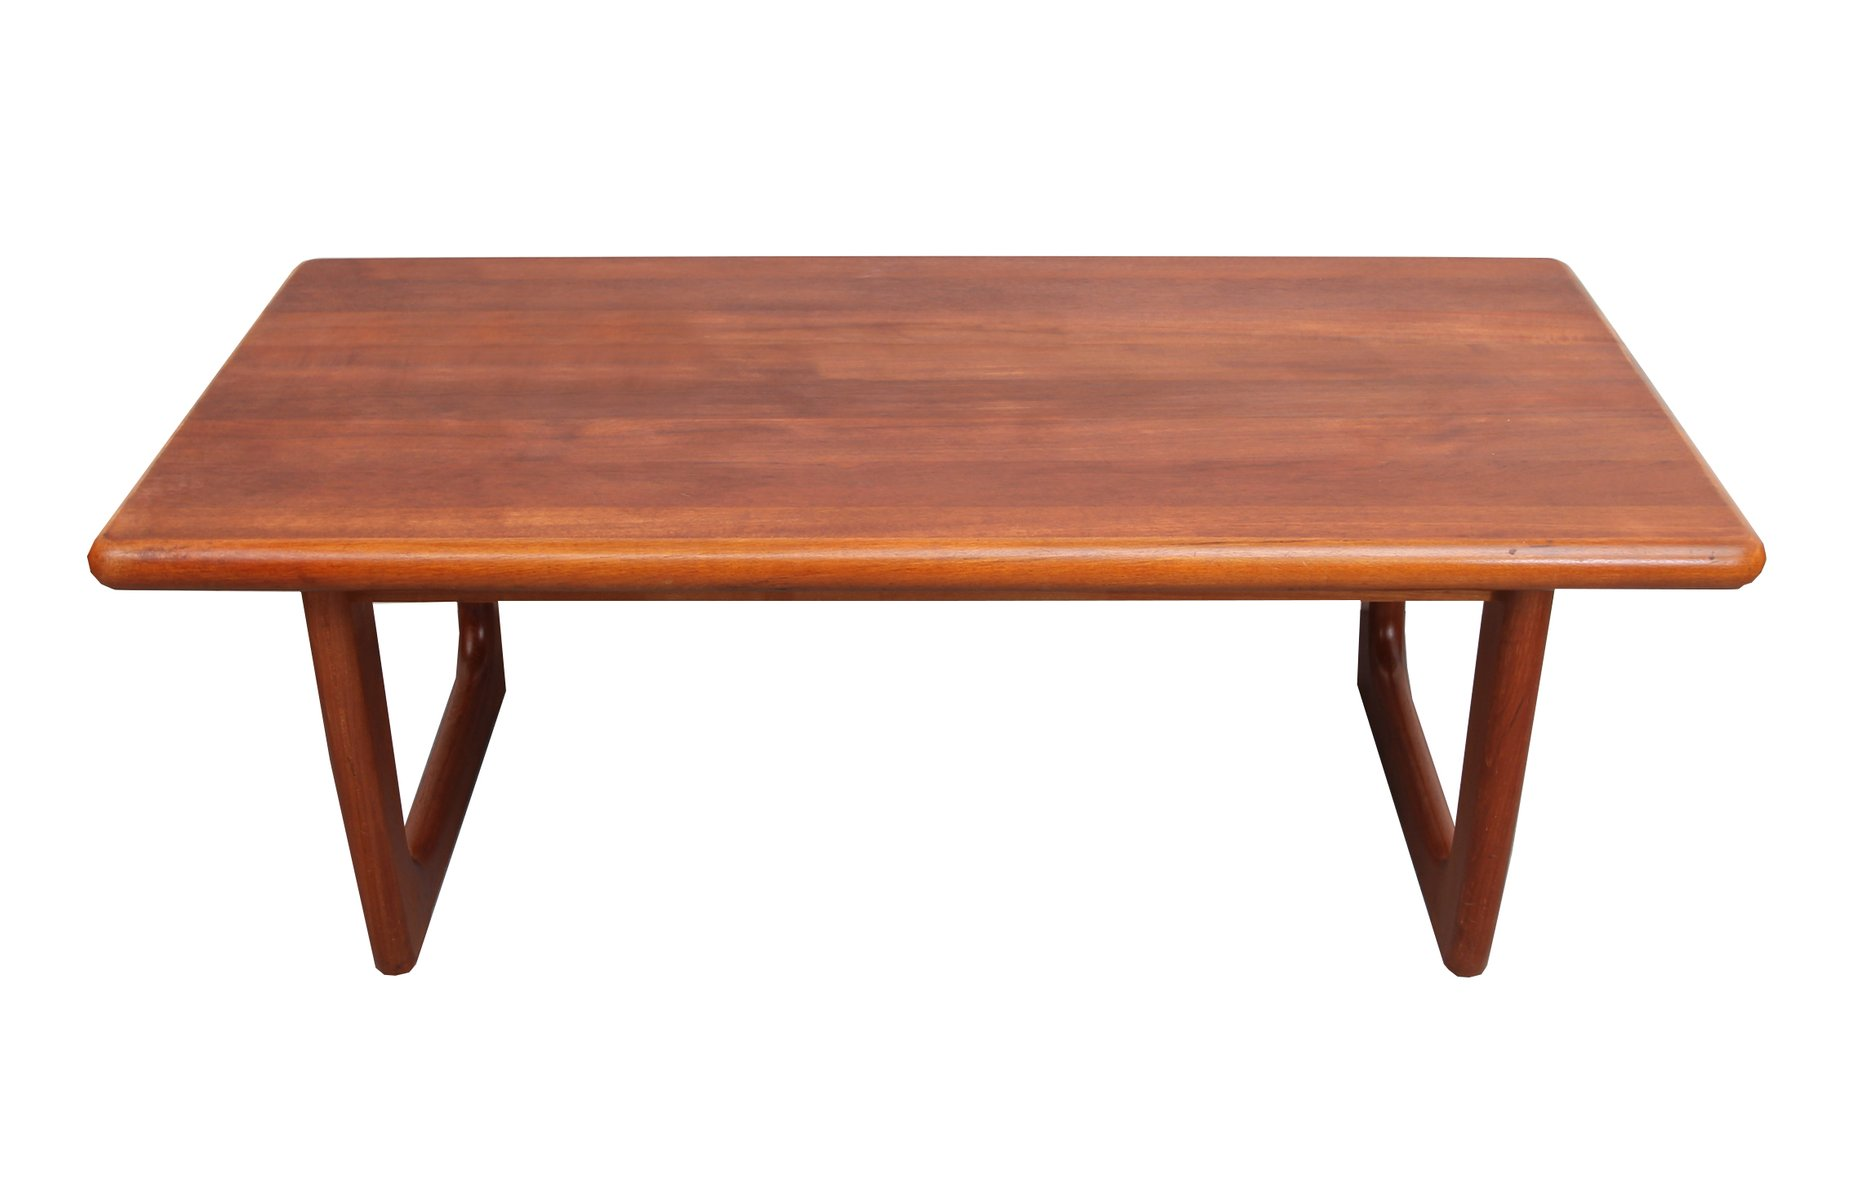 Danish Teak Coffee Table From Niels Bach 1960s For Sale At Pamono